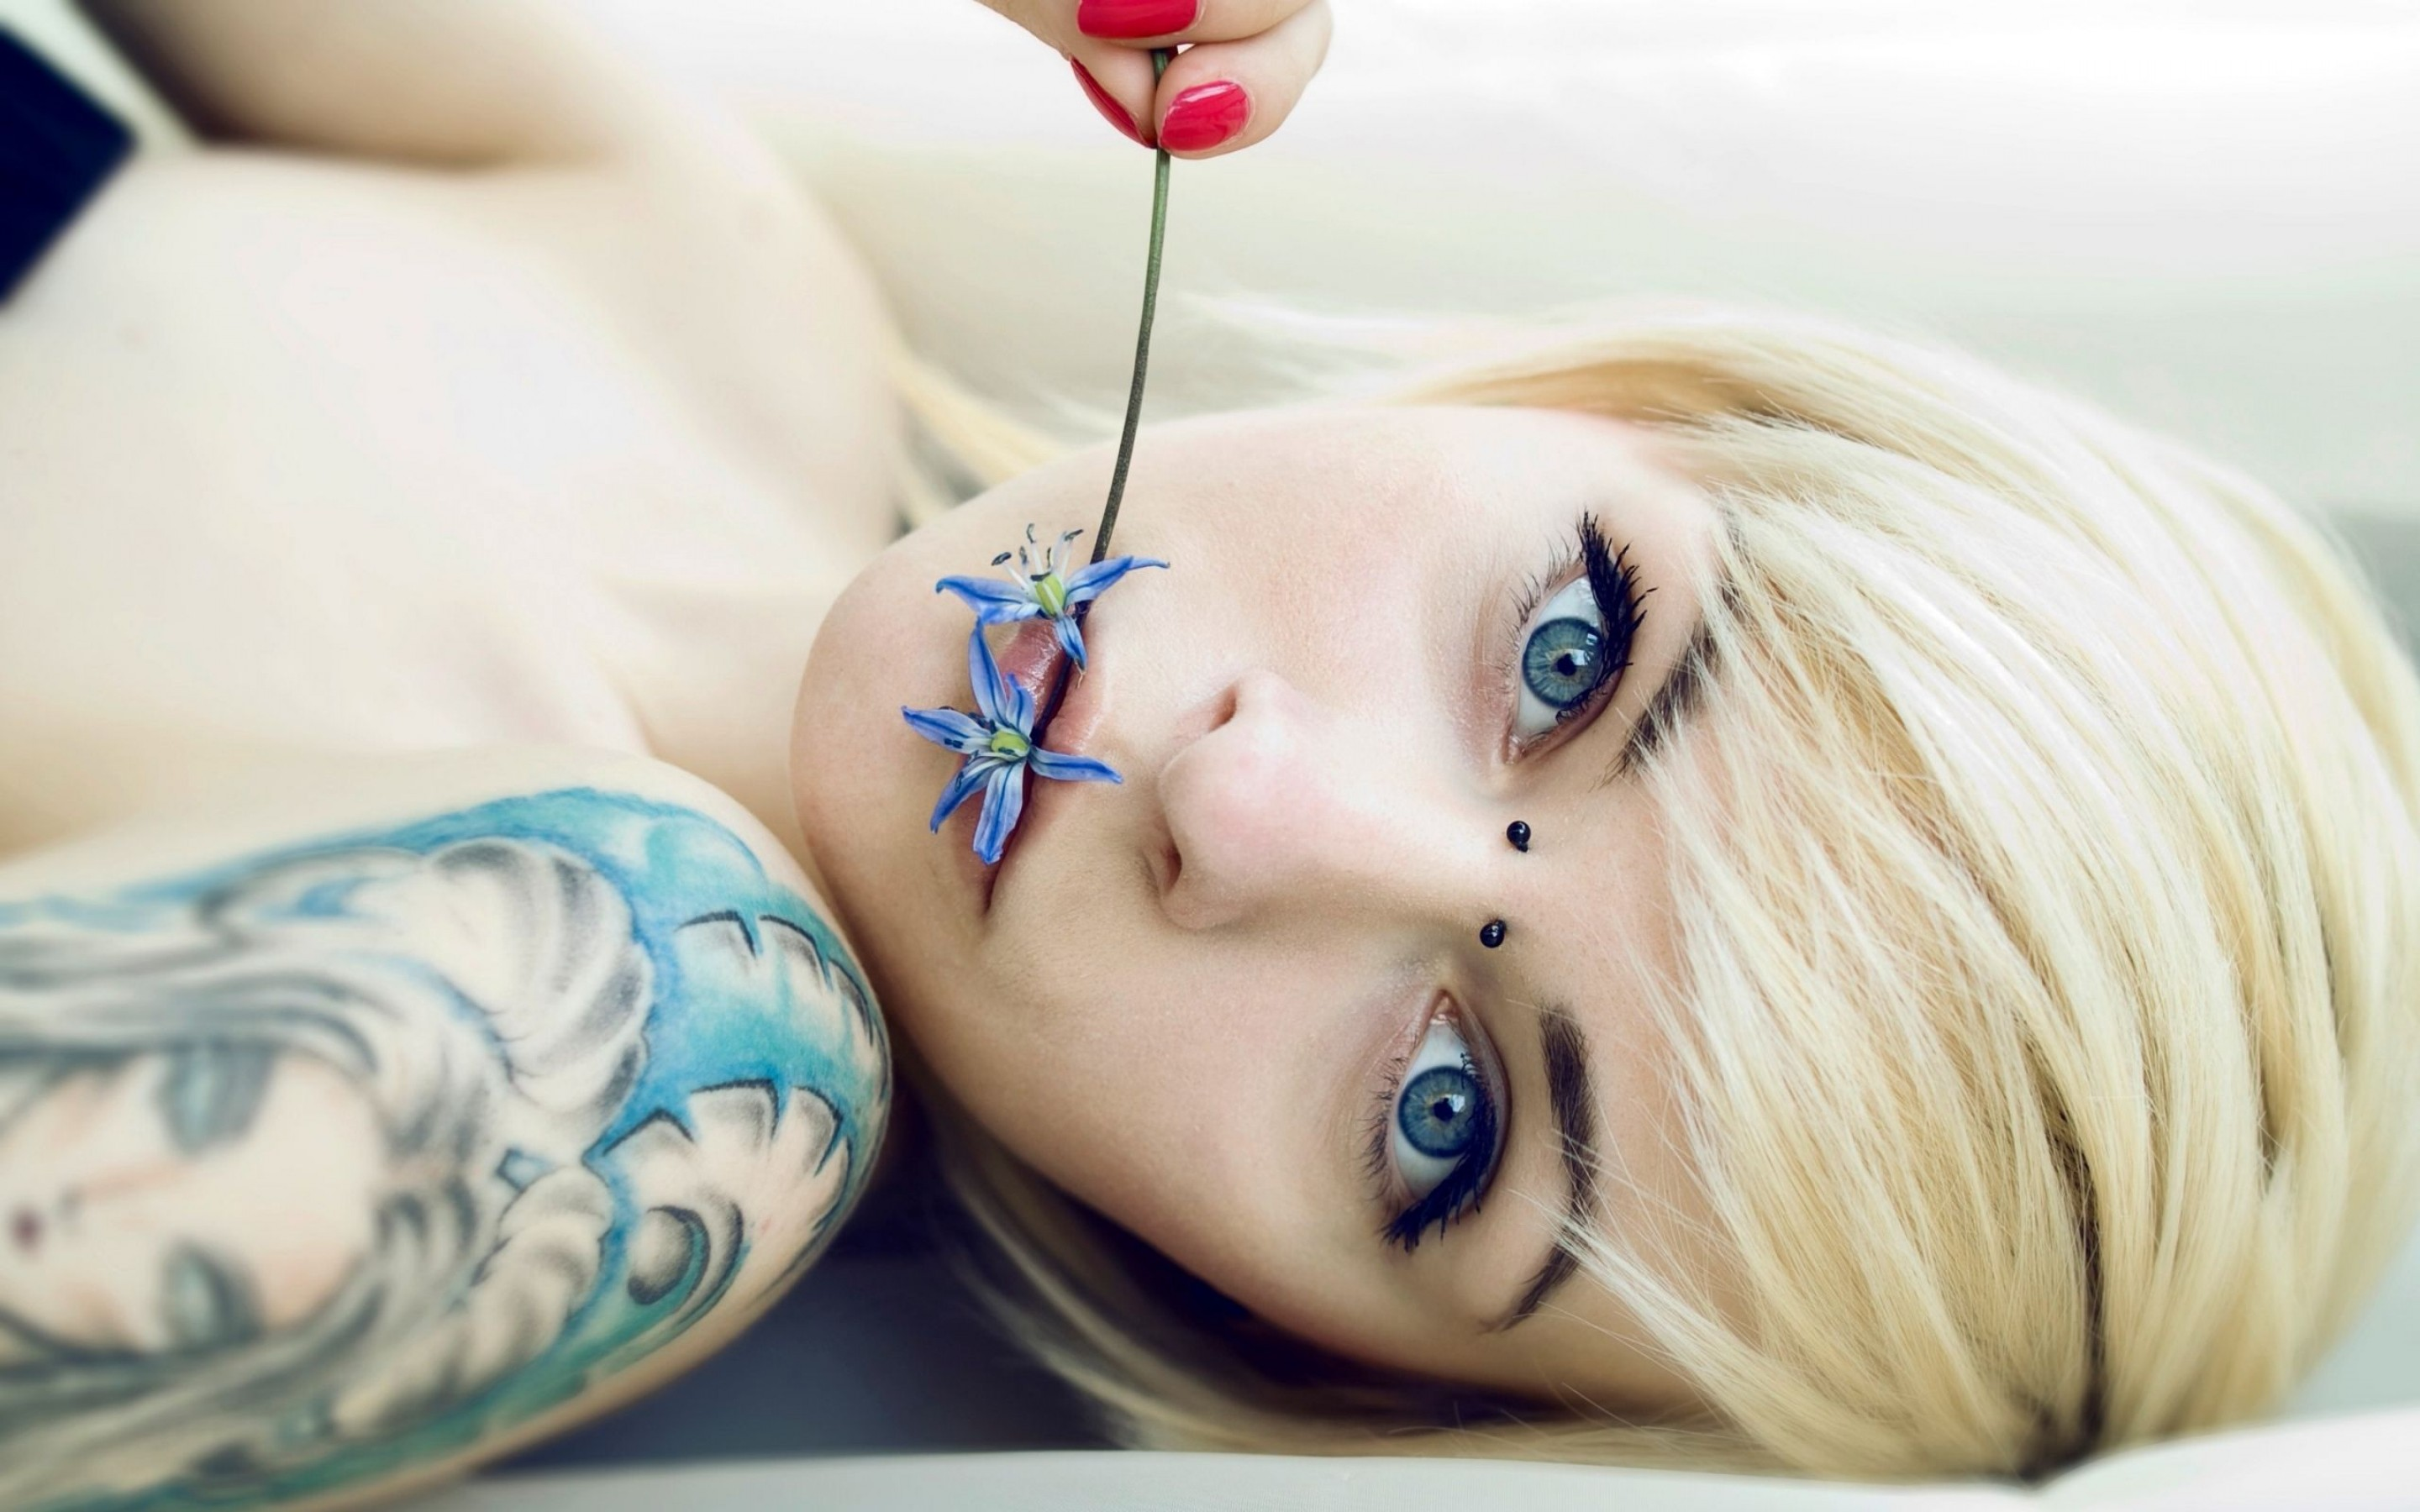 Download Wallpaper Girls Women Tattoo With Tags Face Blonde